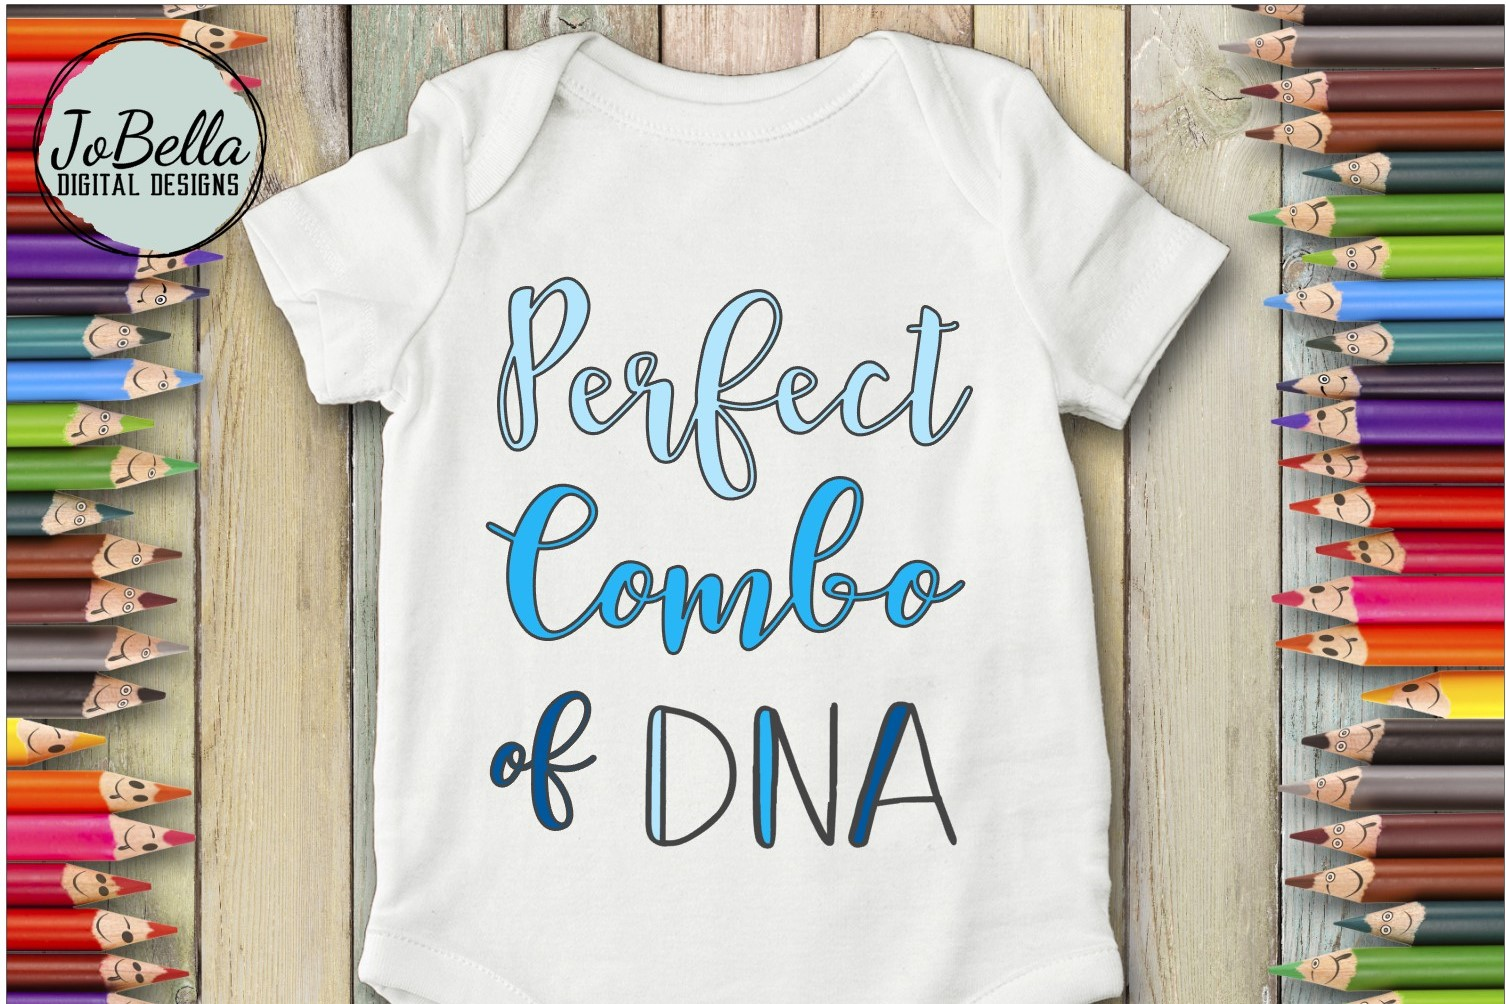 Cute Baby Boy or Big Boy SVG - Perfect Combo of DNA example image 1